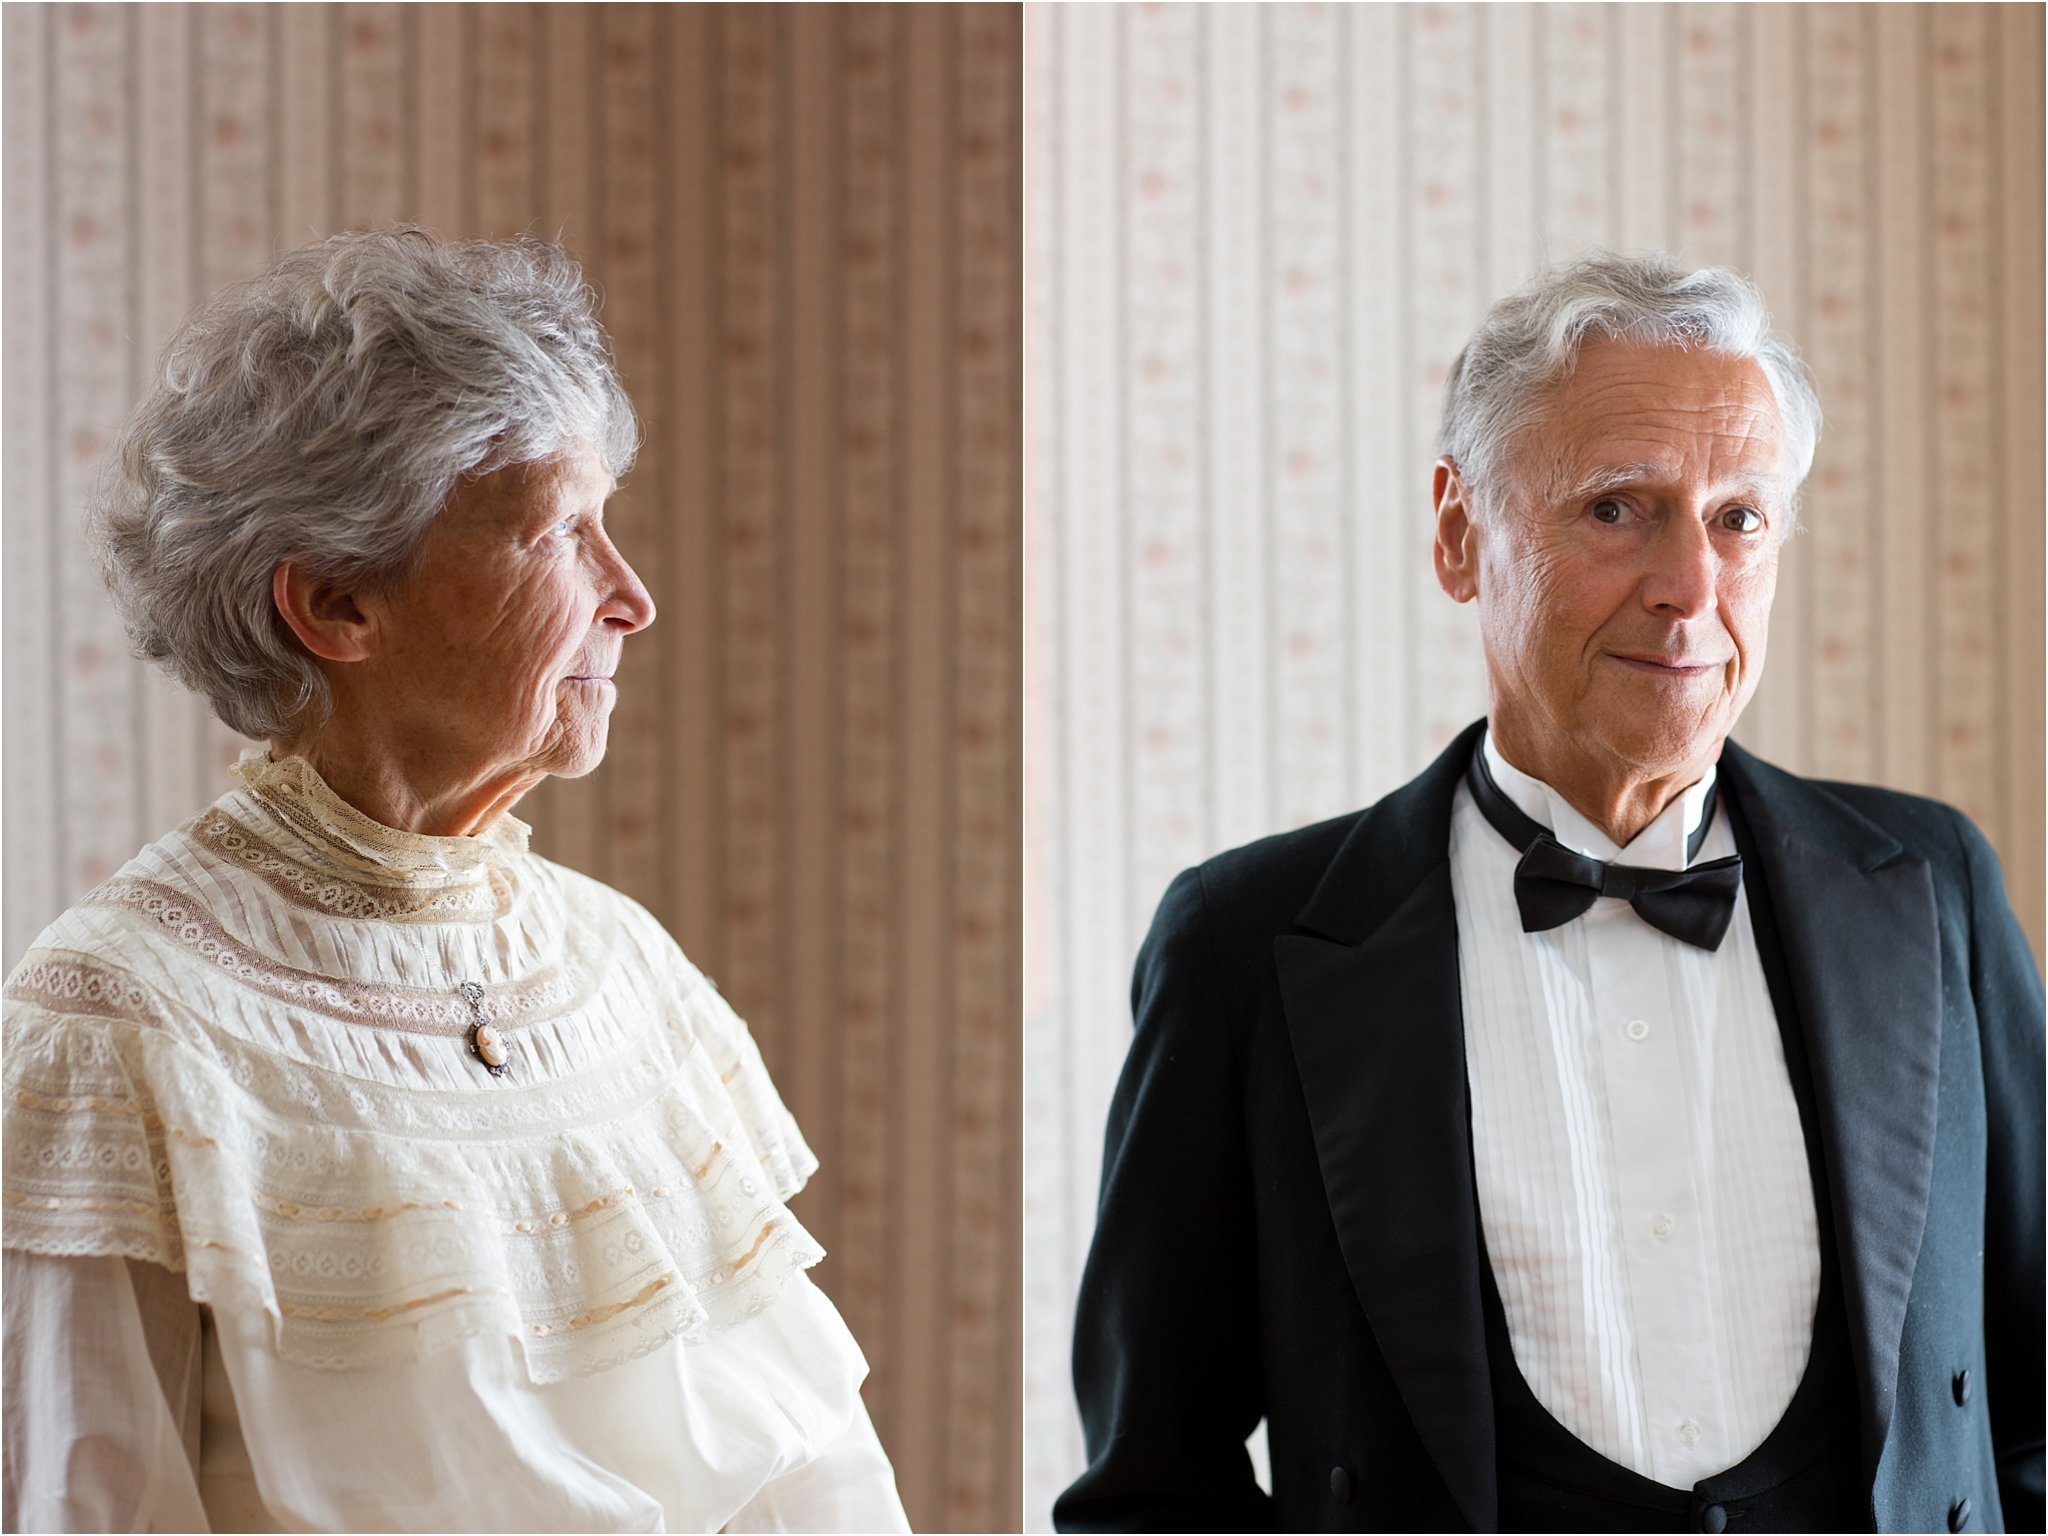 Portraits Of Wearing Antique Wedding Dress And Tuxedo Fiftieth Anniversary